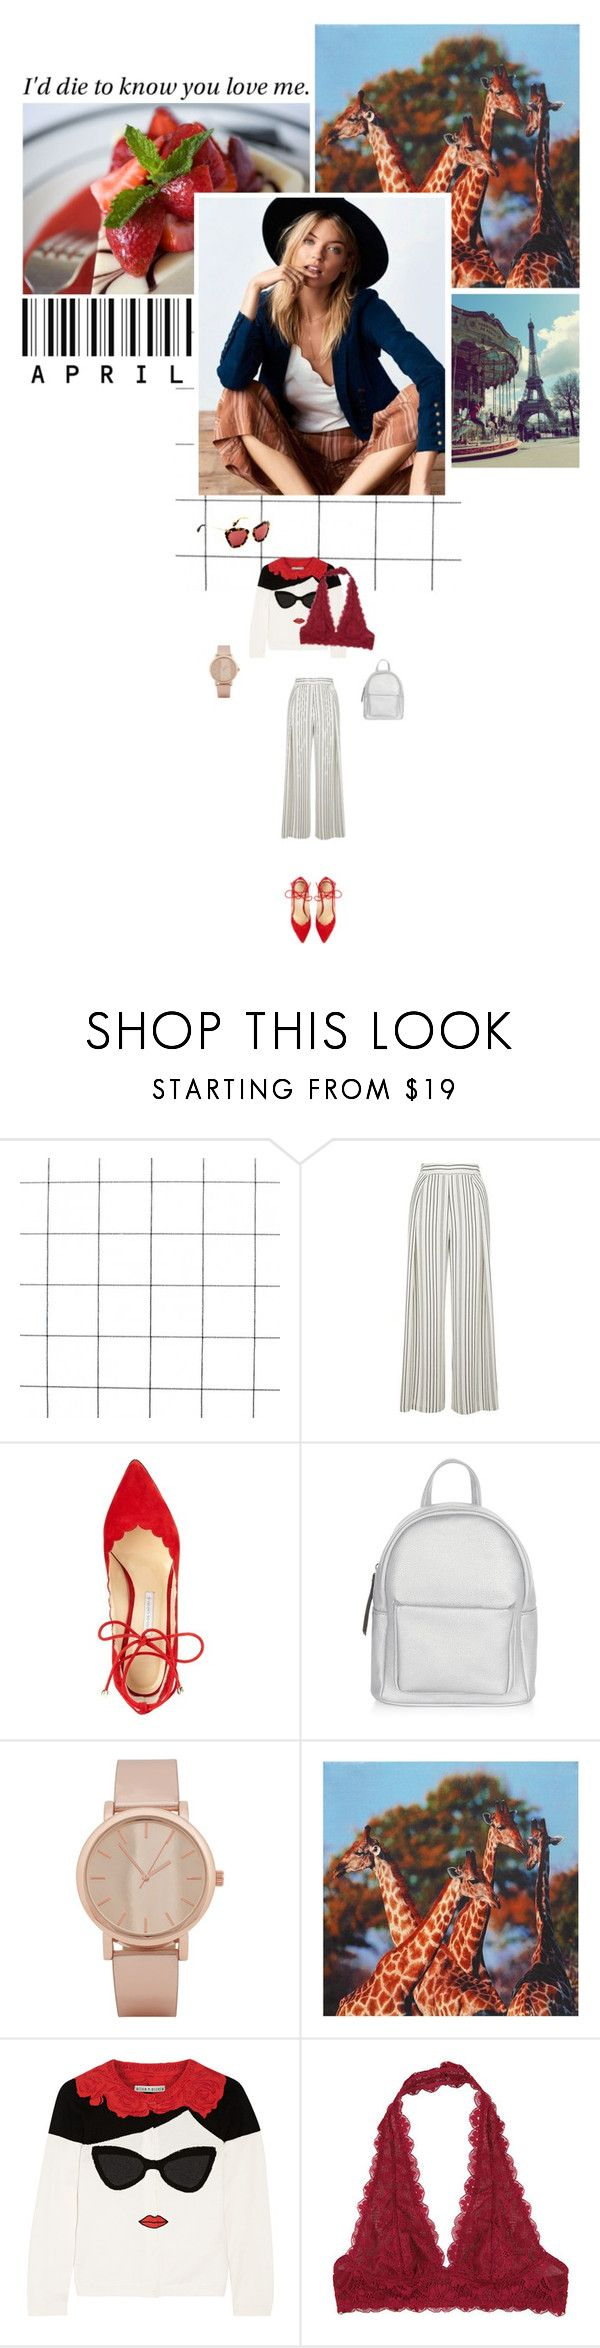 """""""I'd die to know you love me."""" by miky94 on Polyvore featuring moda, Topshop, Bionda Castana, CÉLINE, New Look, ALDO, WALL, Alice + Olivia e Free People"""